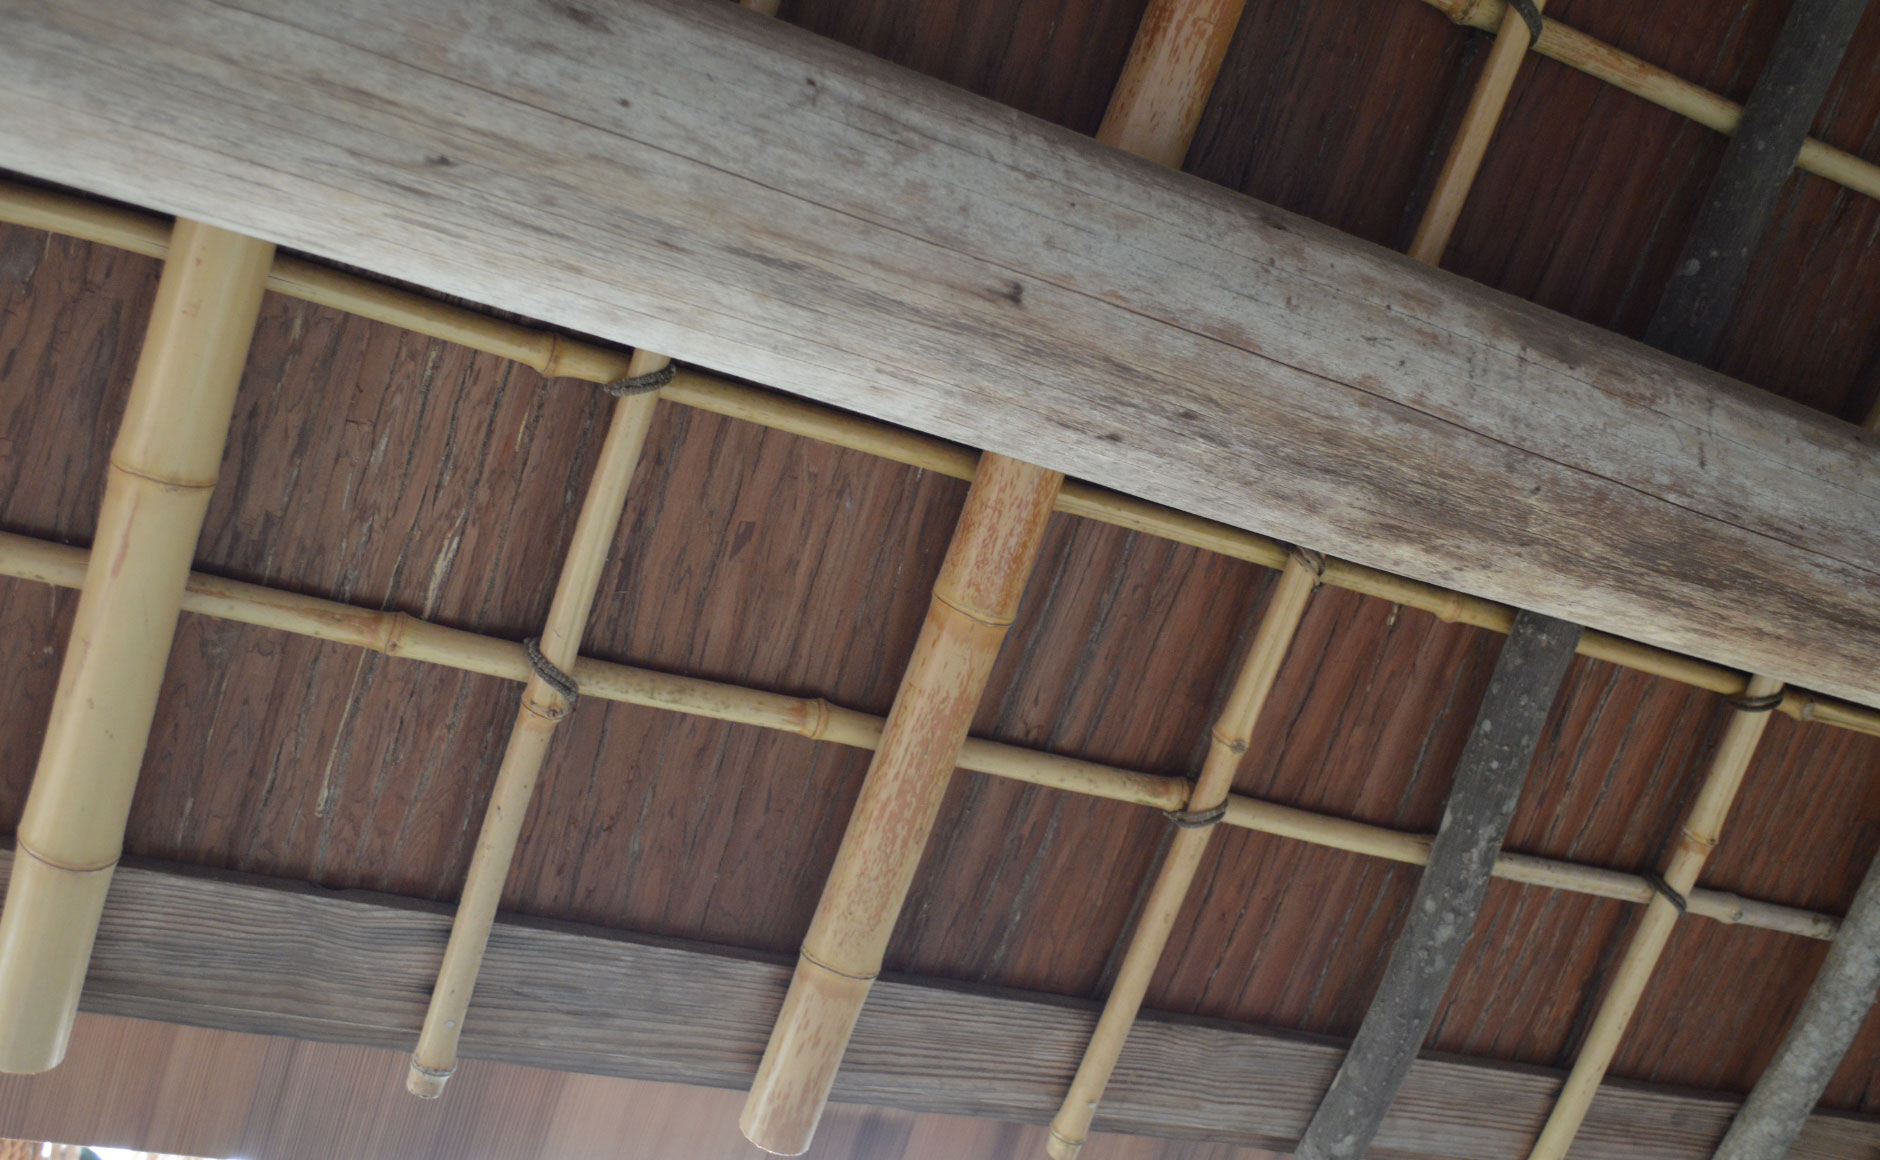 Many tree varieties used for the eave rafters